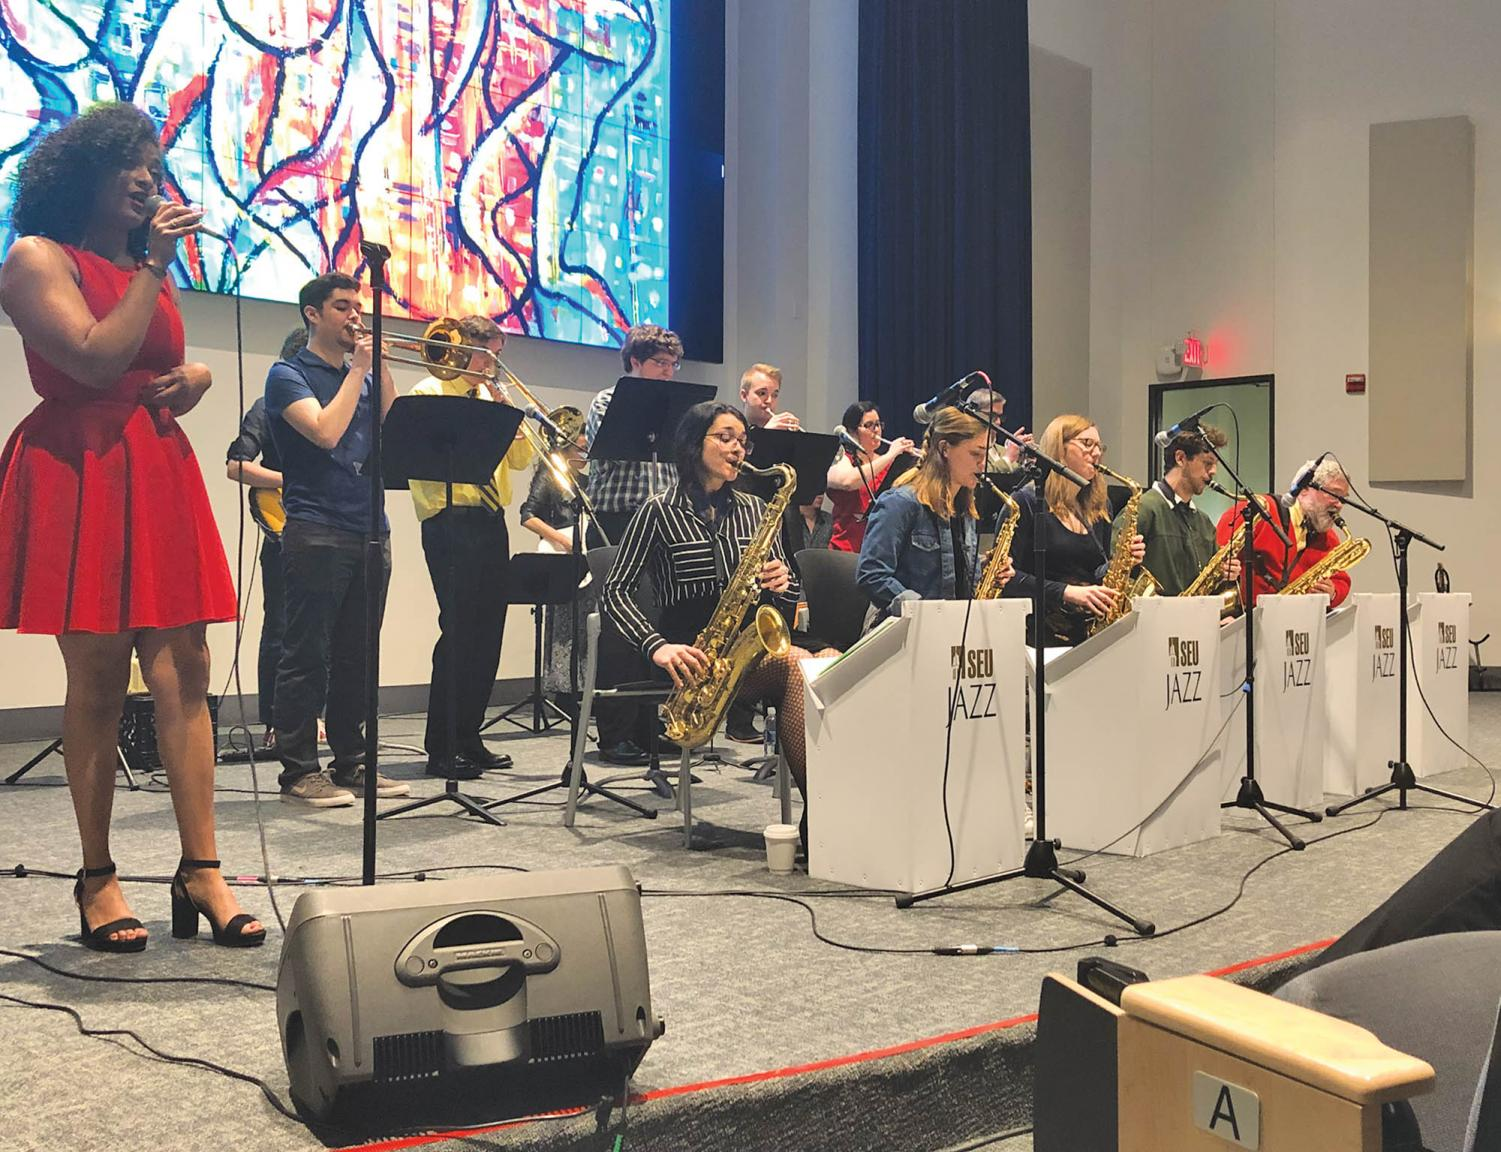 Sierra Bouldin (left) sings with fellow members of the SEU  Steady Band. All three groups will preform again in April in Jones Auditorium.